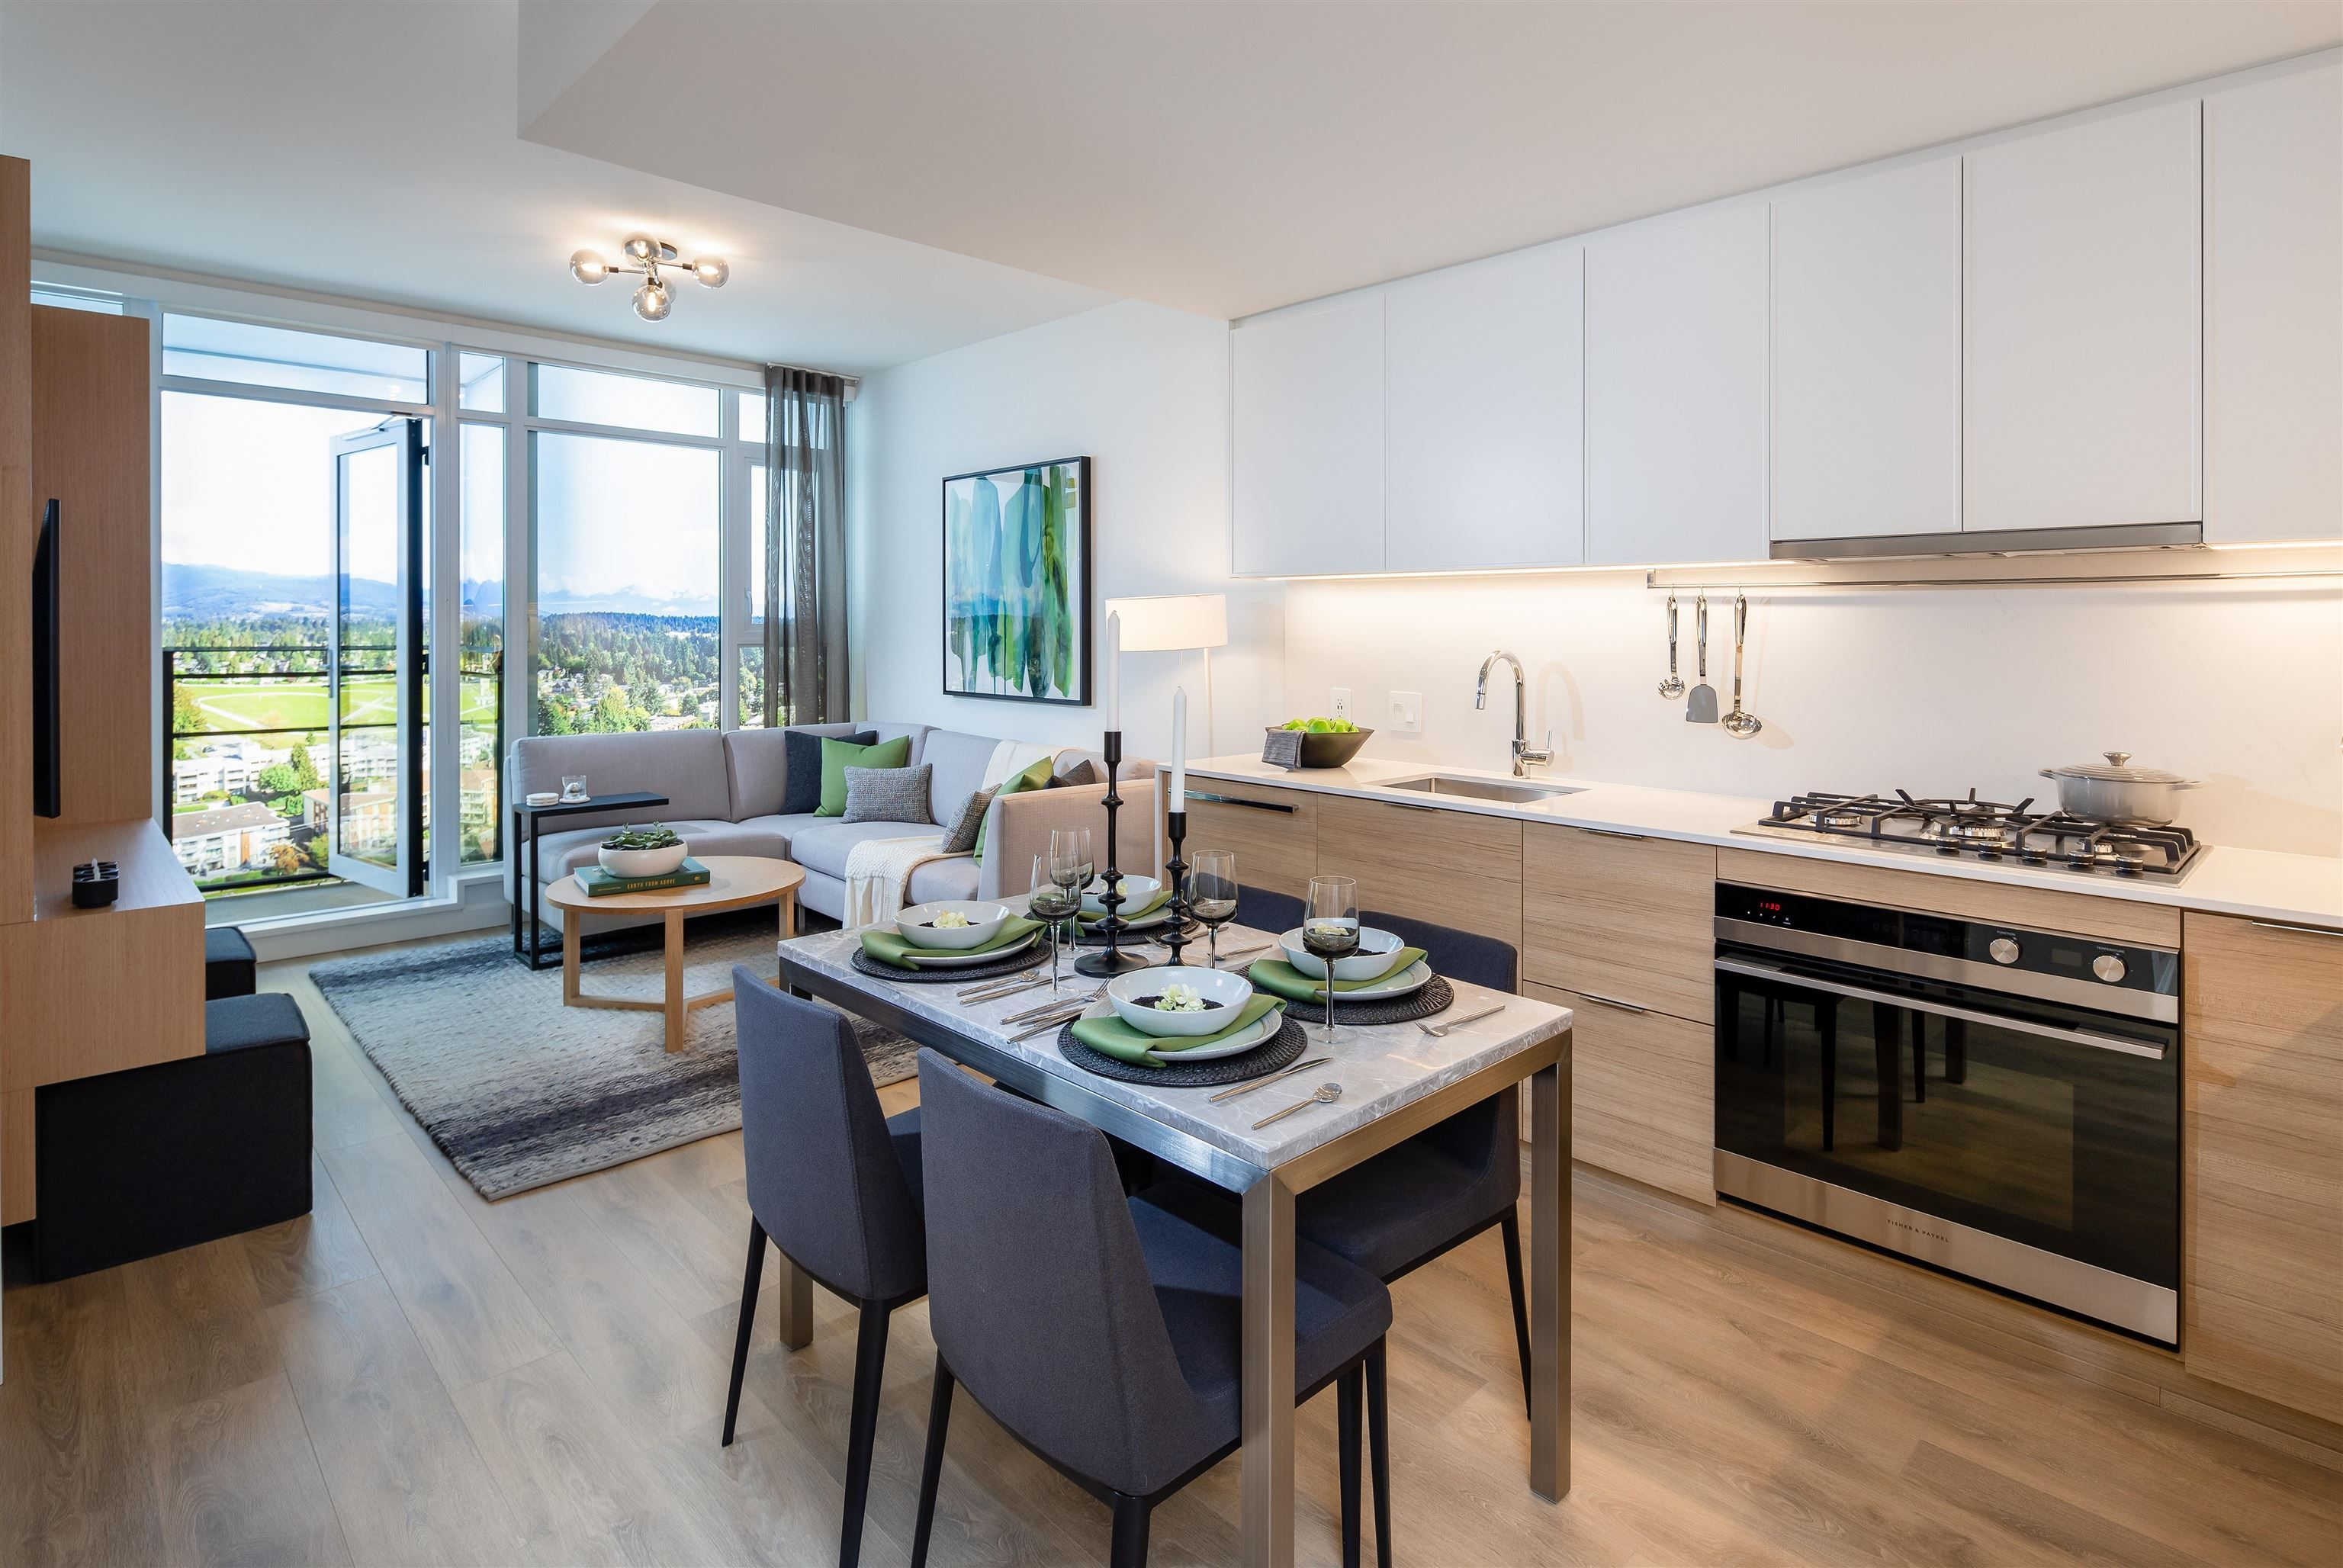 """Main Photo: 505 1045 AUSTIN Avenue in Coquitlam: Coquitlam West Condo for sale in """"The Heights on Austin"""" : MLS®# R2611452"""